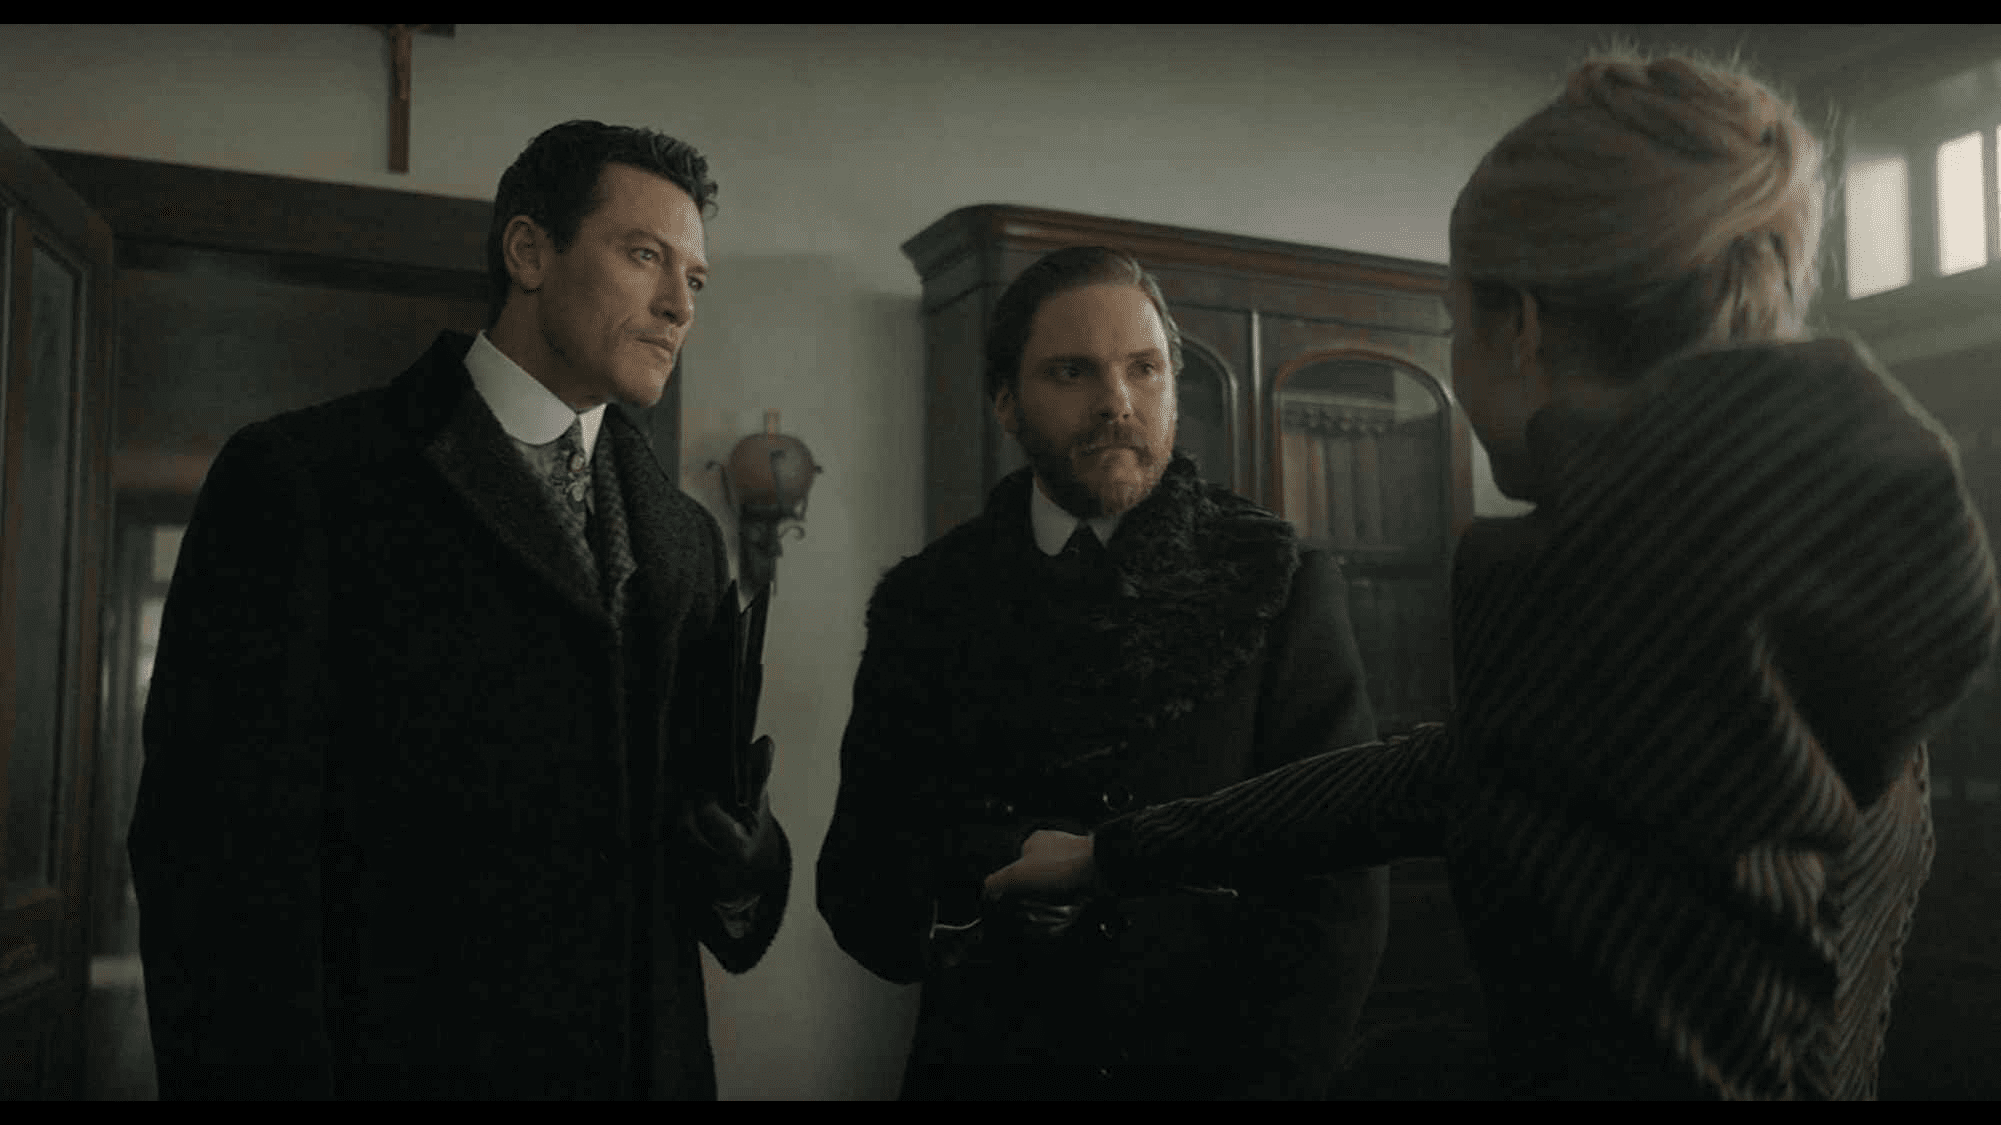 TV review: Long awaited, 'The Alienist' underwhelms